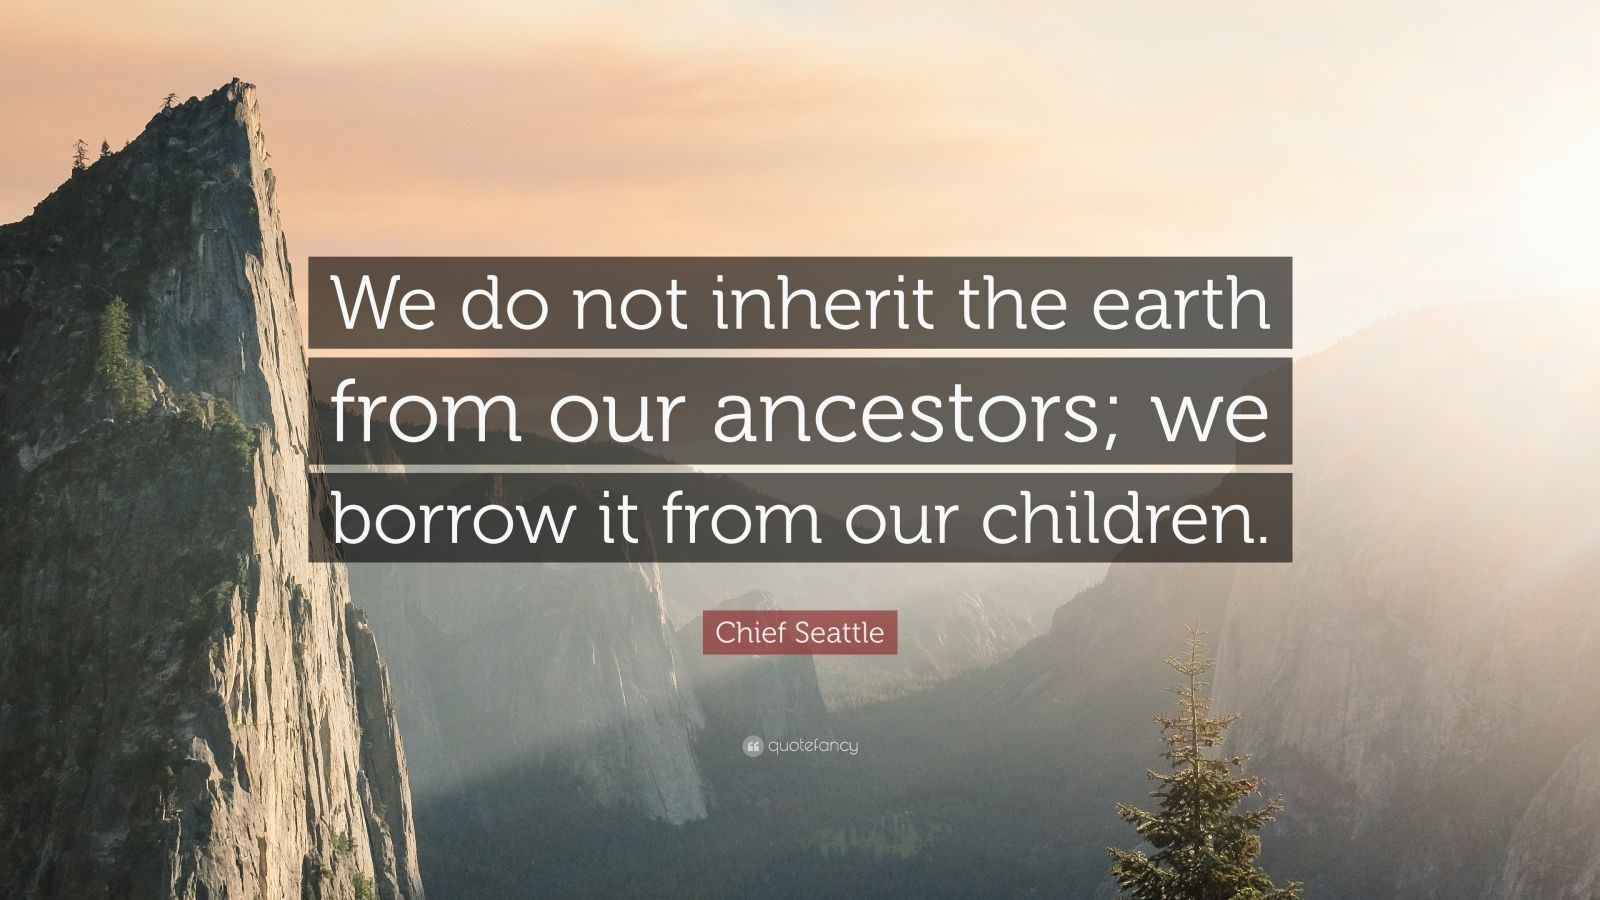 Beautiful Wallpapers With Quotes Of Life Chief Seattle Quote We Do Not Inherit The Earth From Our